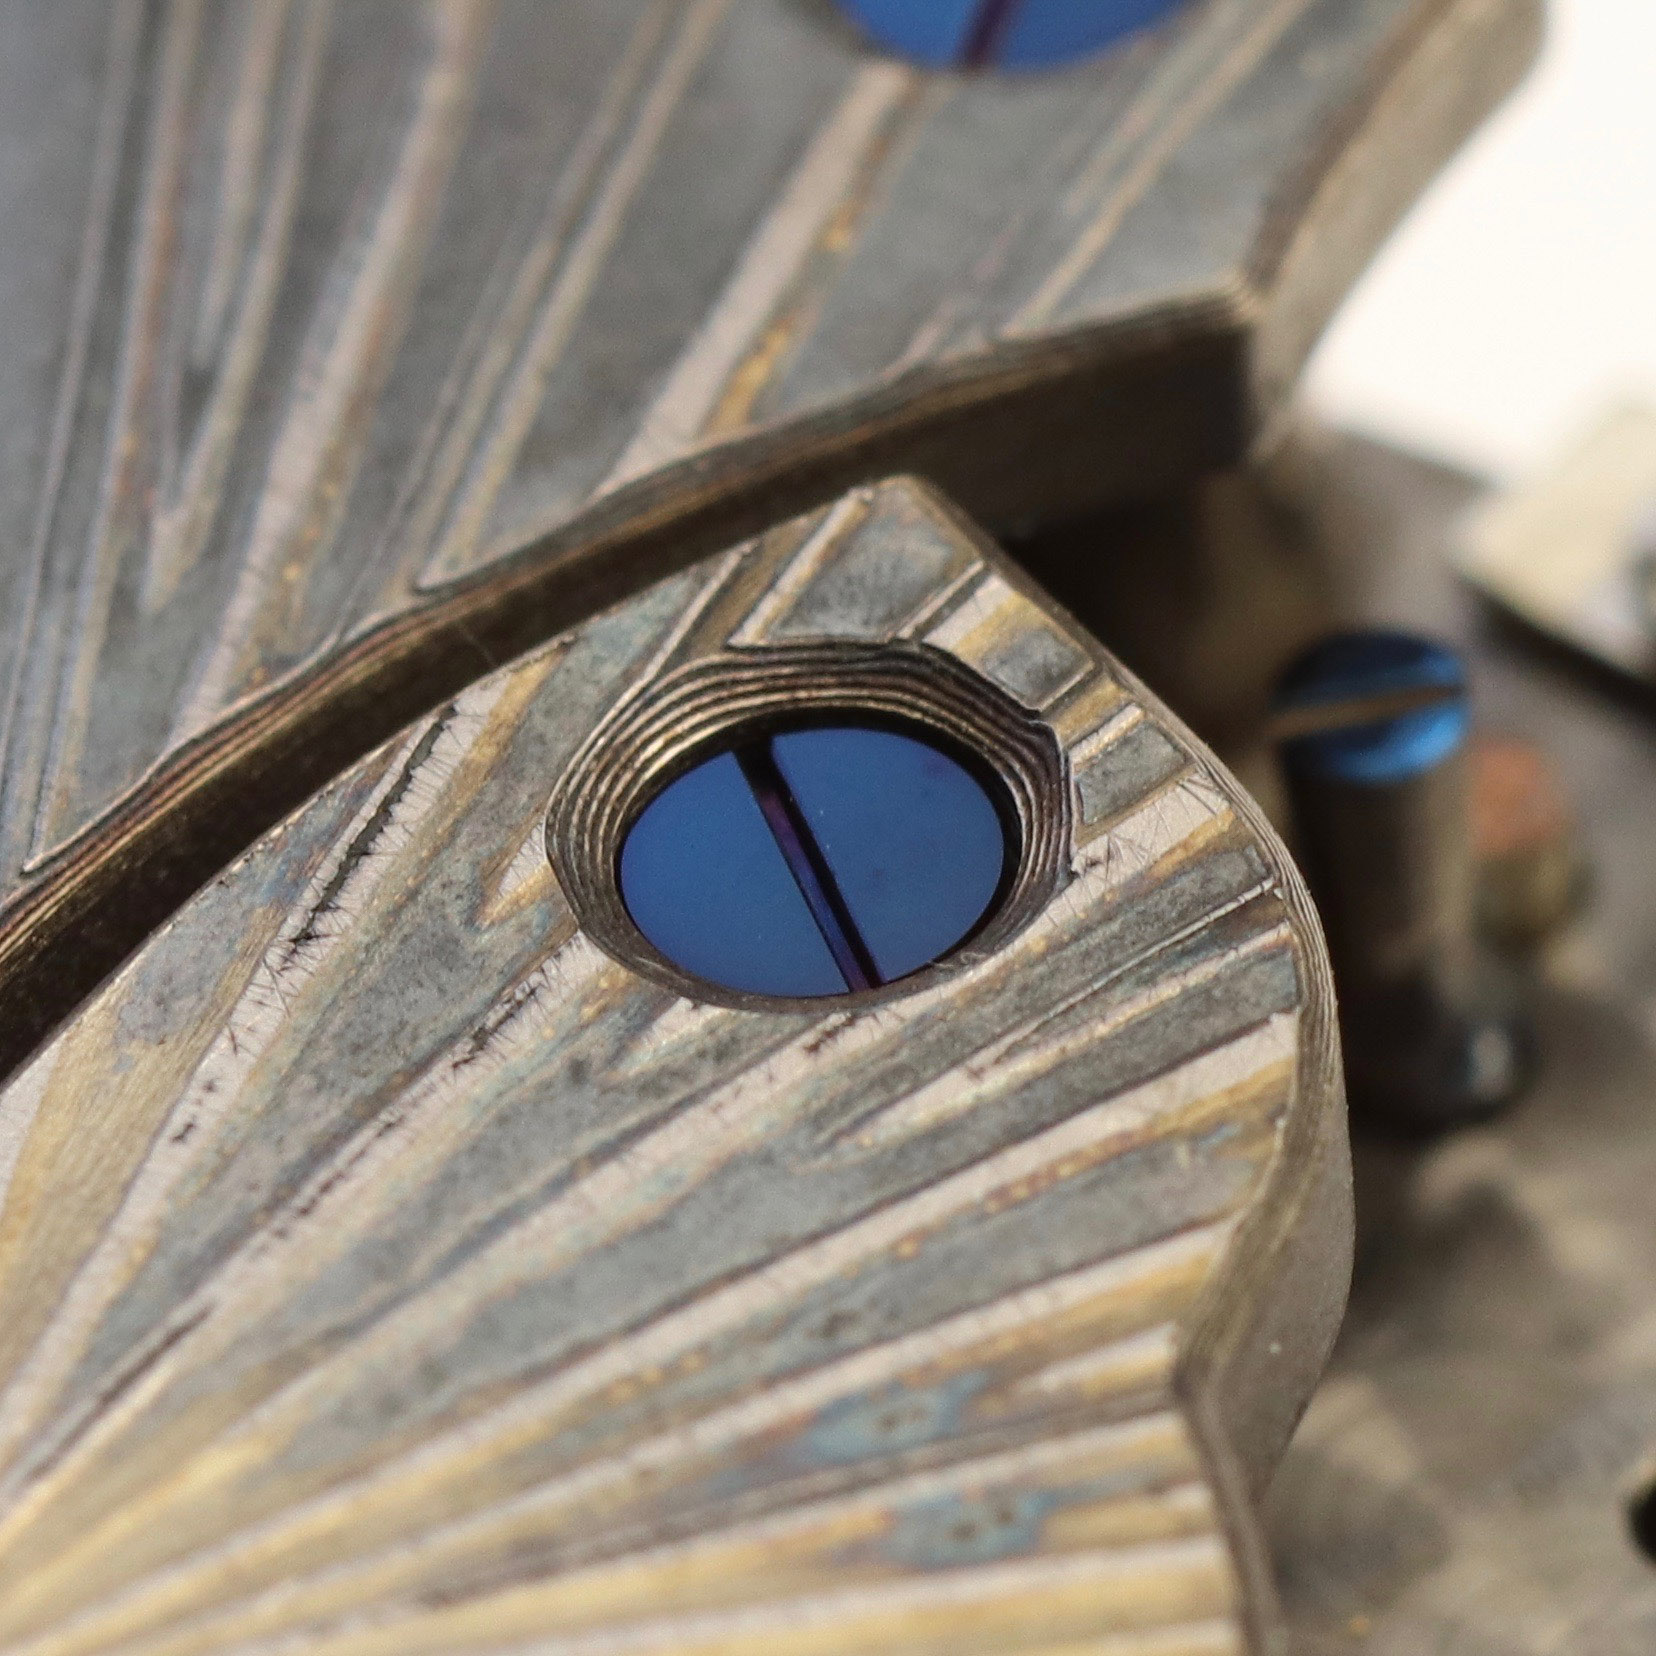 Close up of angling around the screw hole showing the multiple levels of the mokame gane